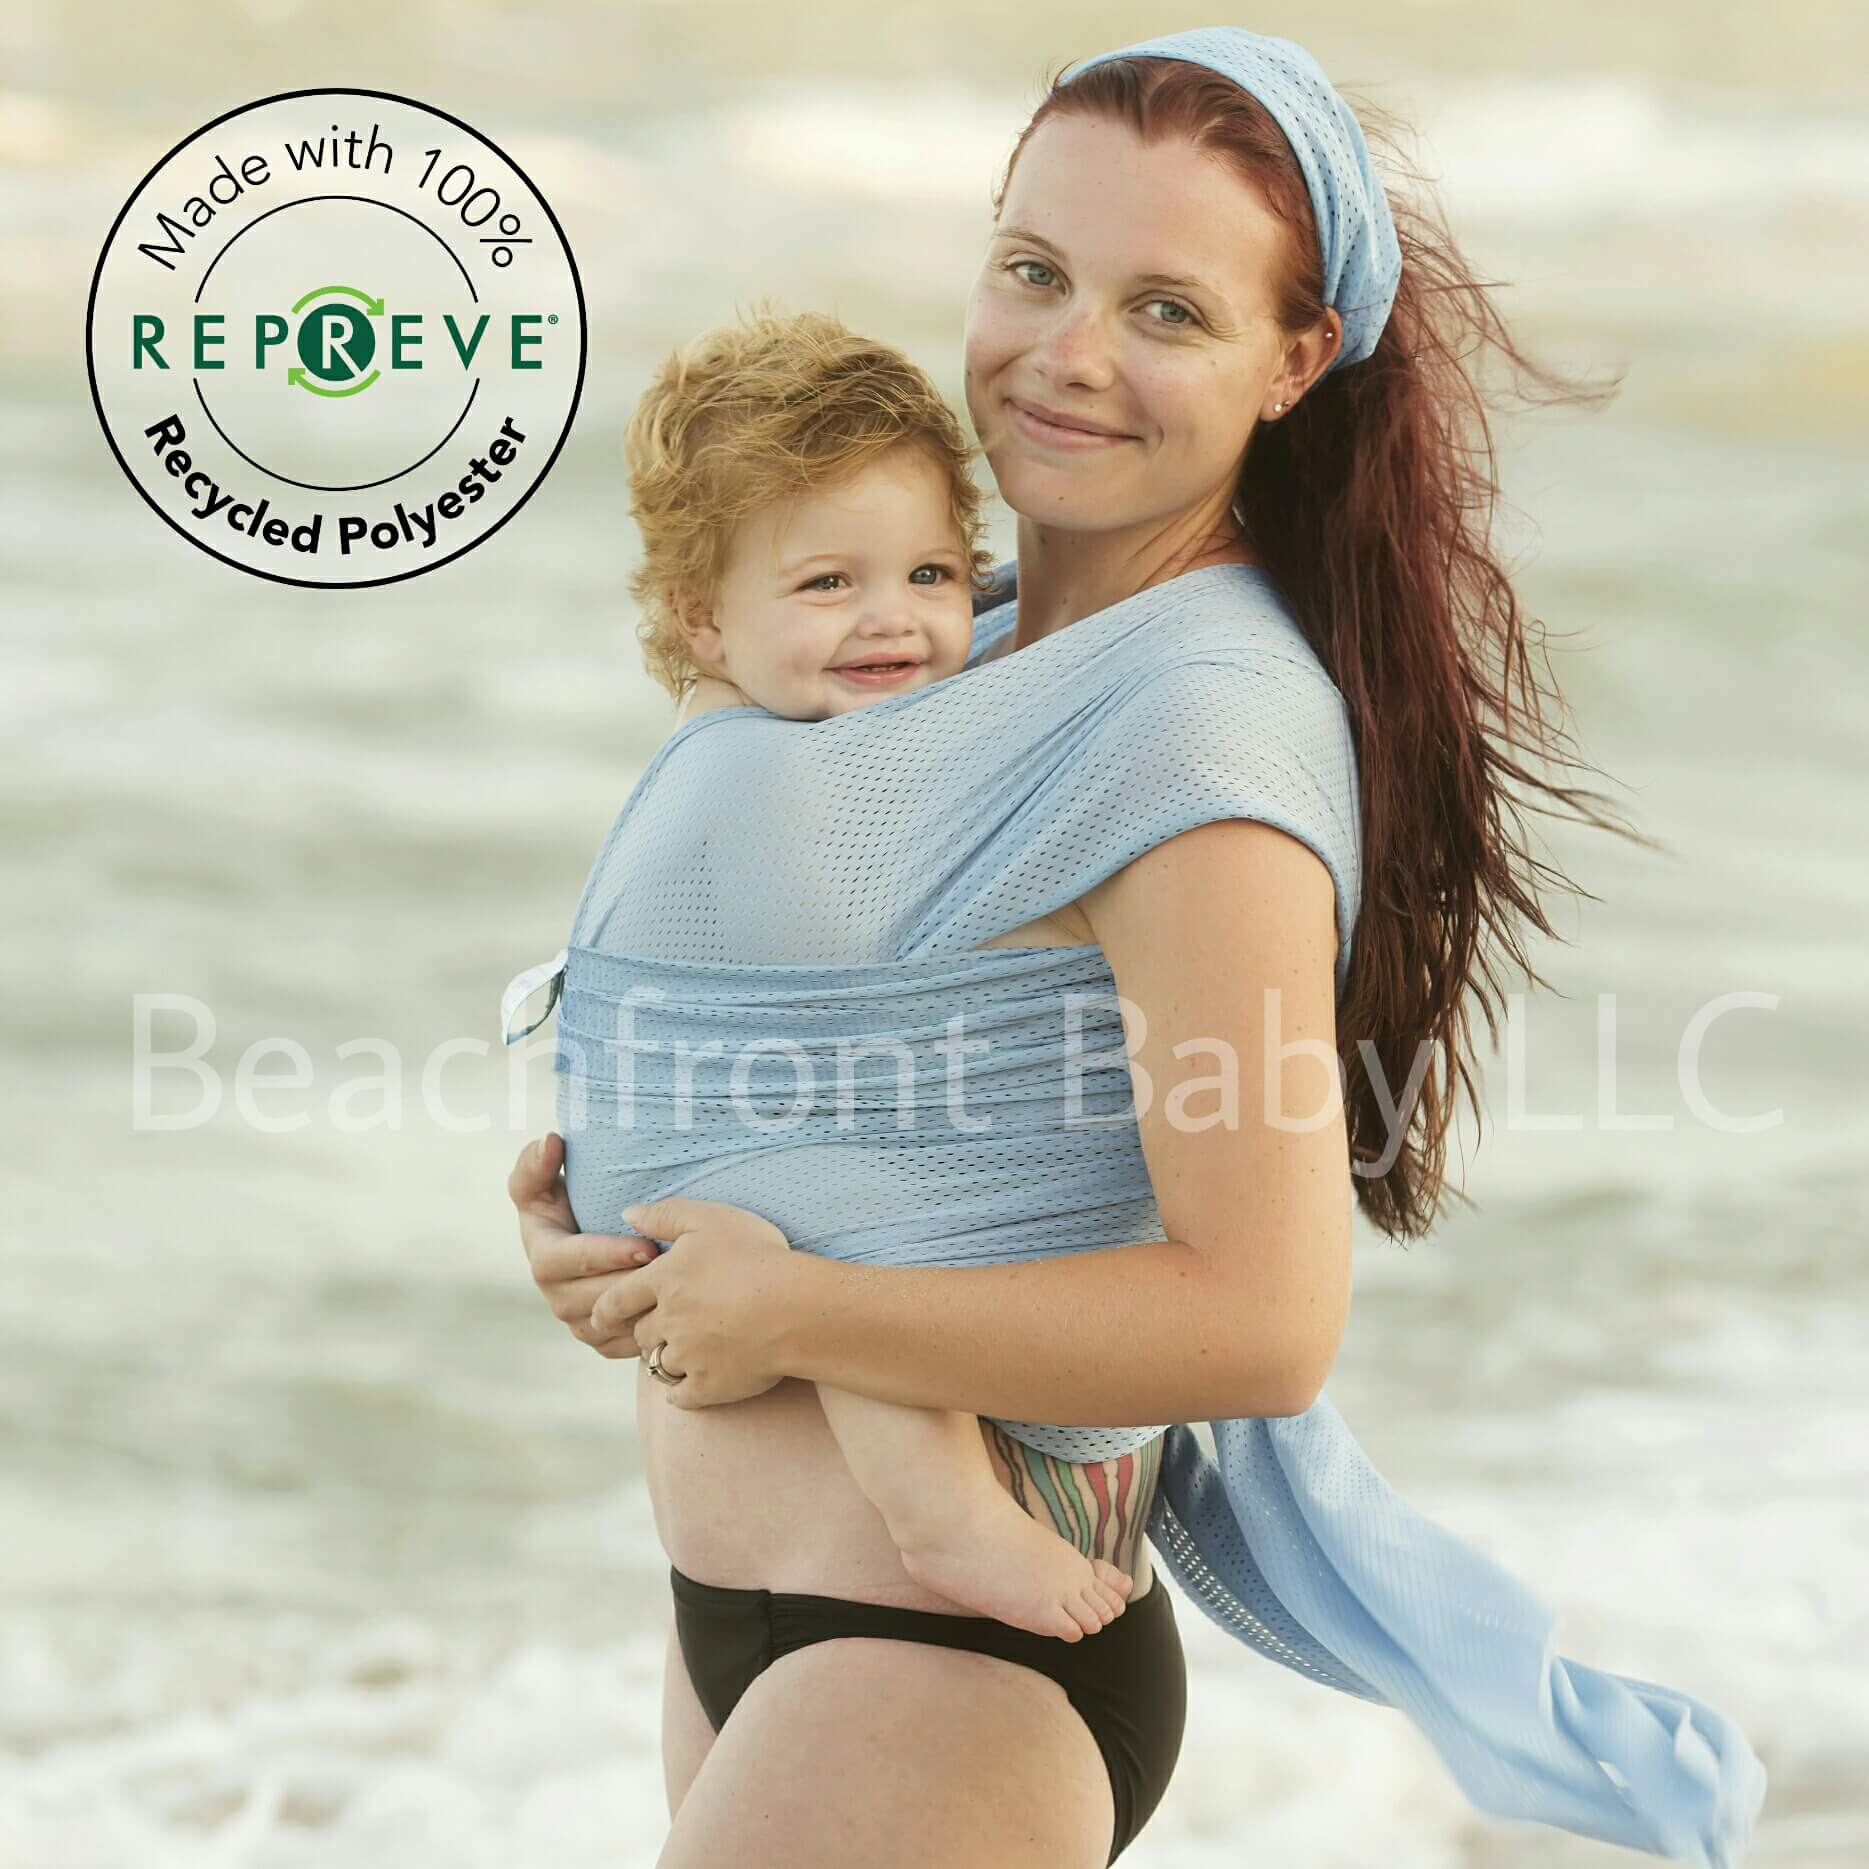 Recycled Beachfront Baby Wrap Made With Repreve